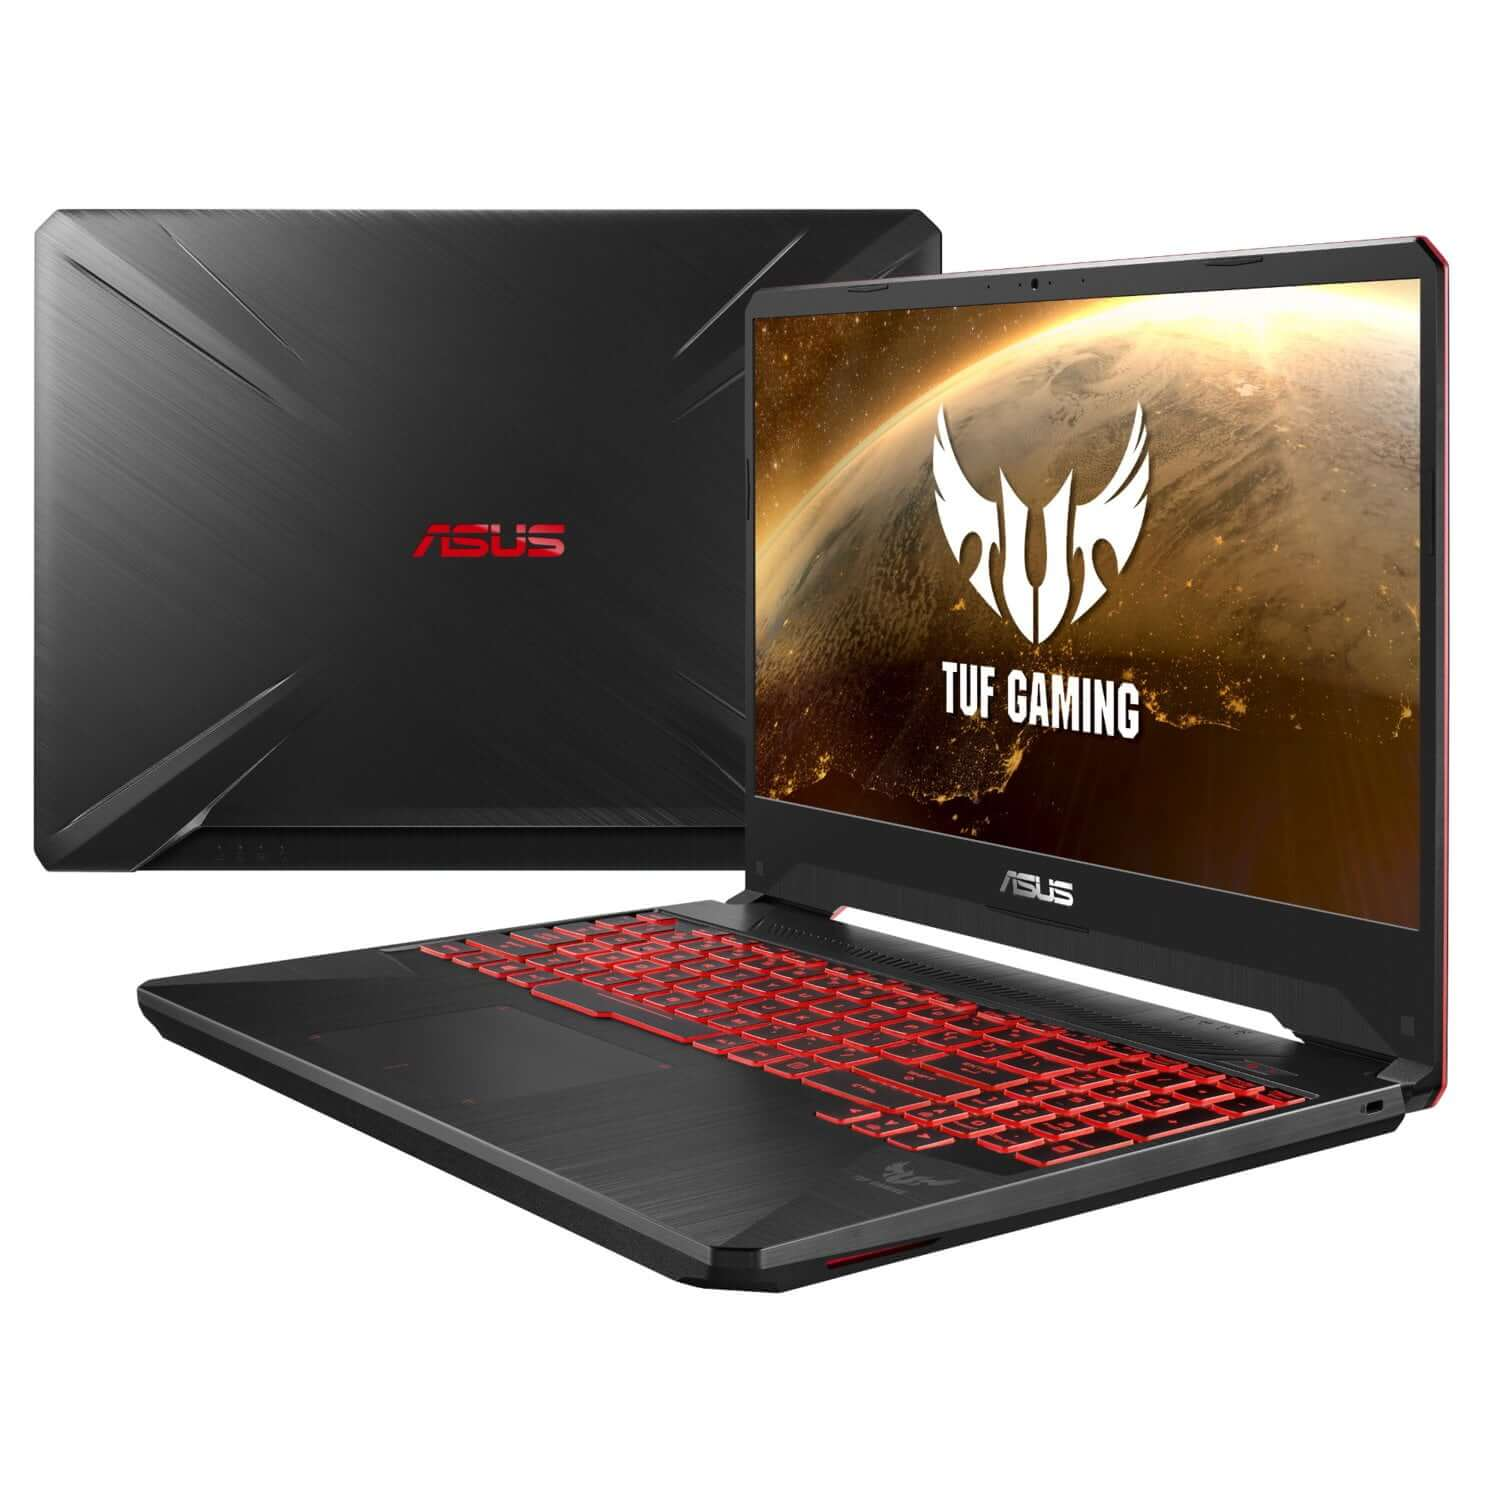 ASUS TUF GAMMING FX505DY-AL016T / AMD RYZEN 5 355H 2.1 / 8192 MB DDR4 / 256 GB SSD PCIE / WINDOWS 10 HOME / 15.6